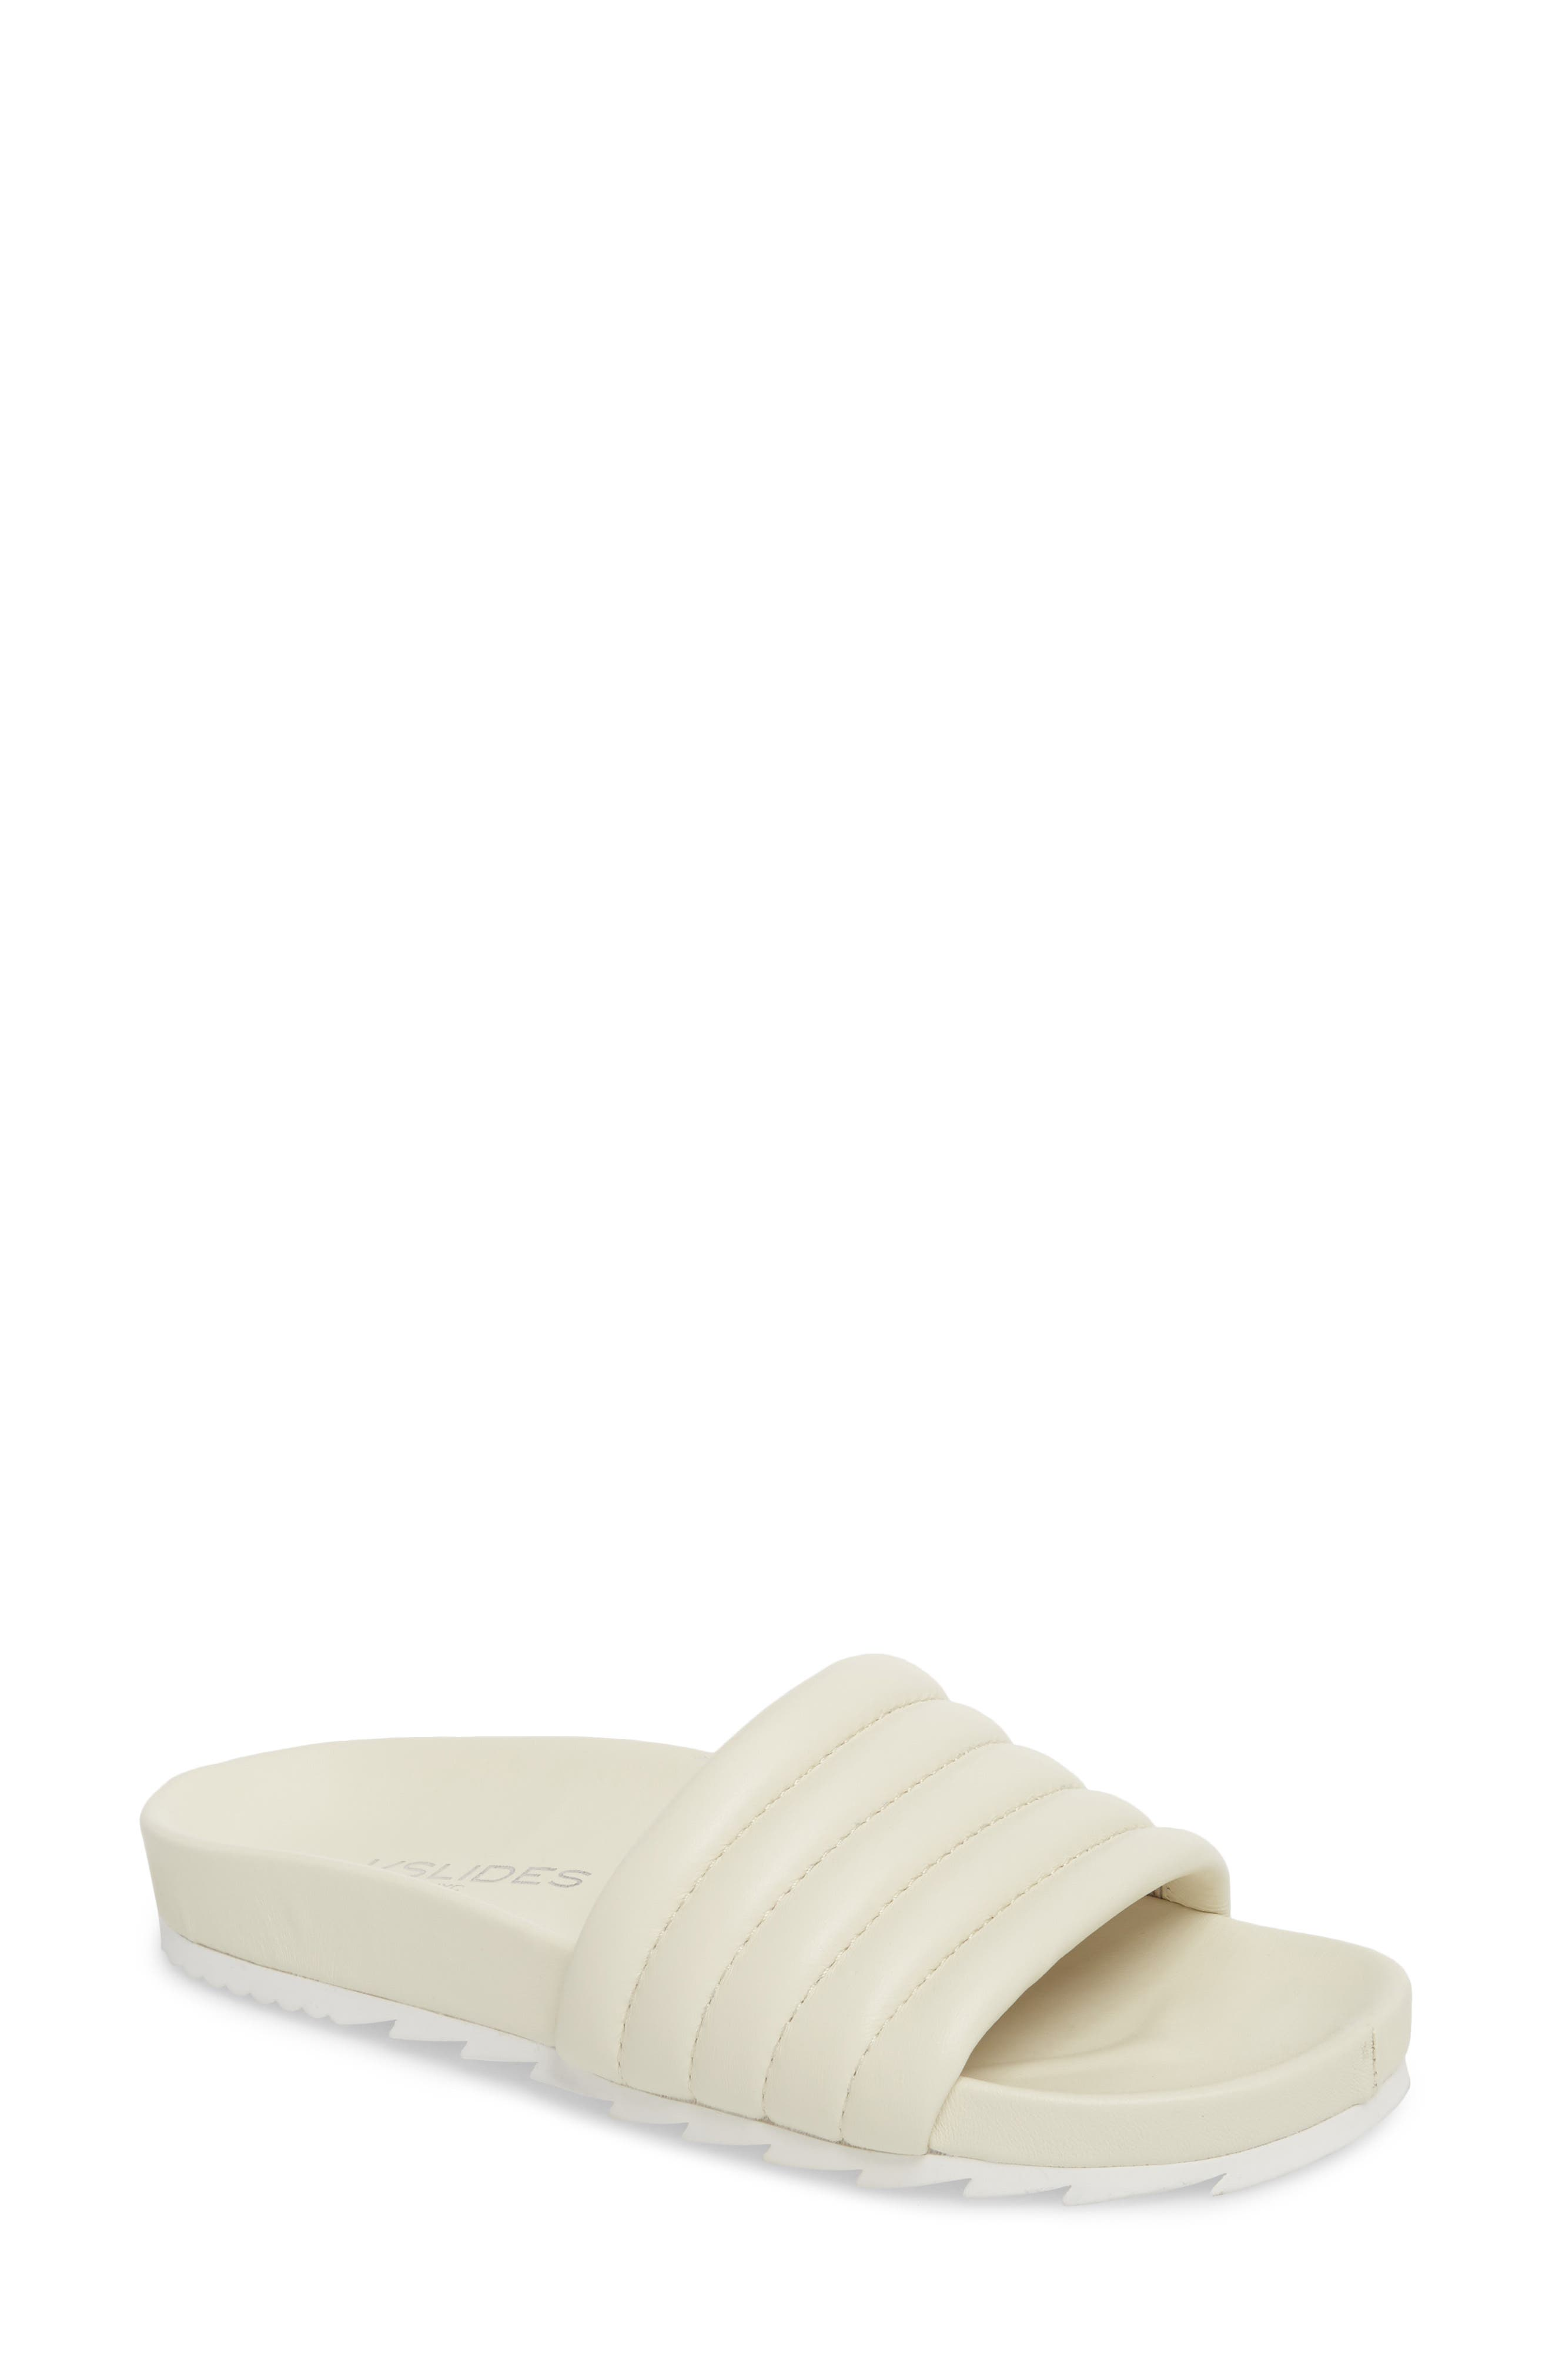 JSLIDES, Eppie Slide Sandal, Main thumbnail 1, color, OFF WHITE LEATHER